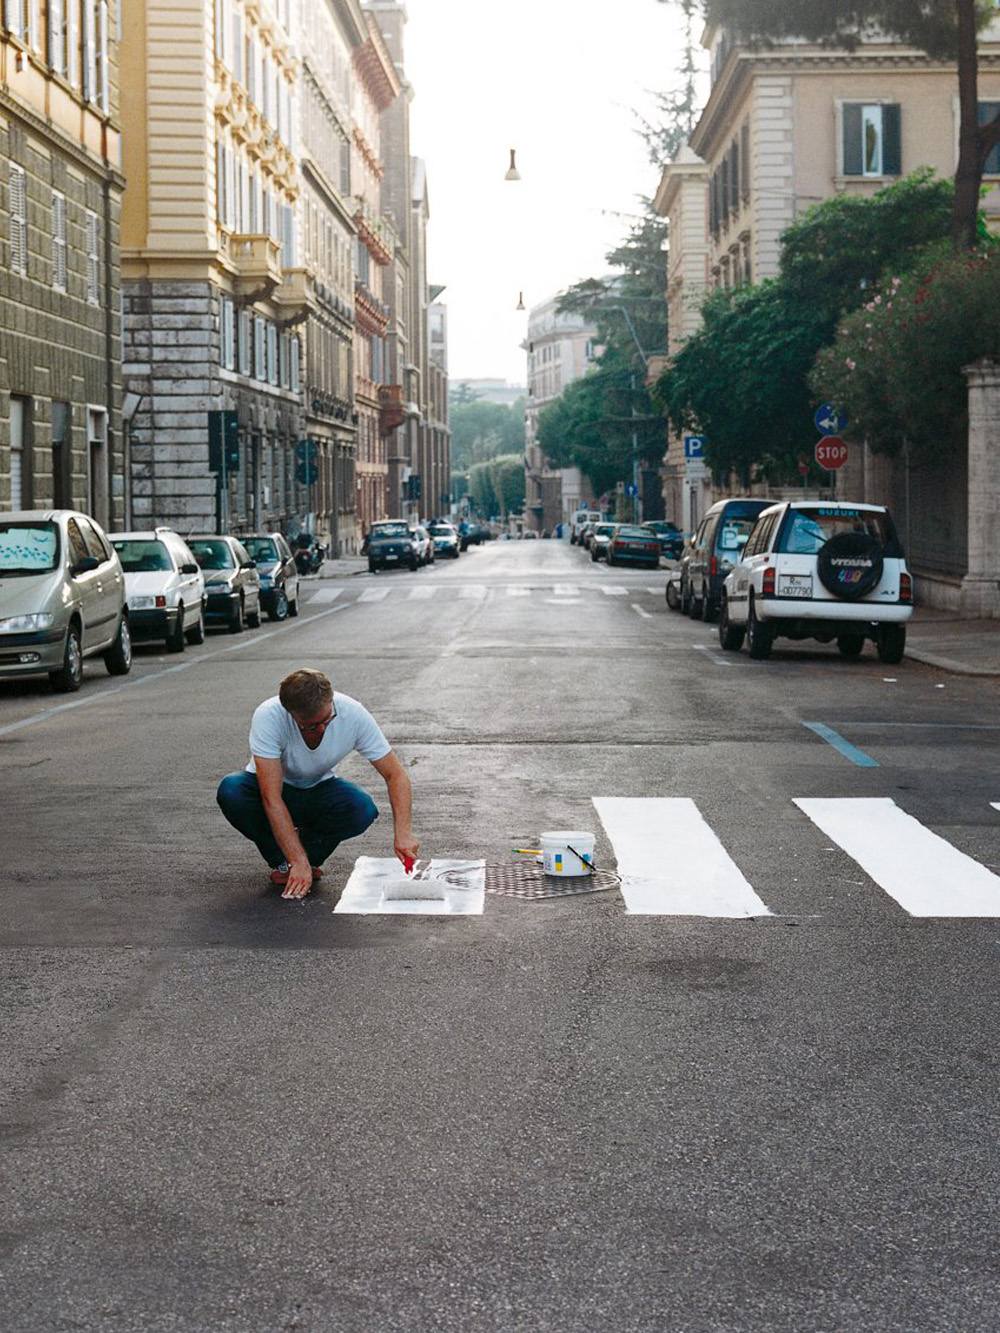 Didier Courbot, needs Rome, 1999, from the series need. [Courtesy of Susan Hobbs Gallery]